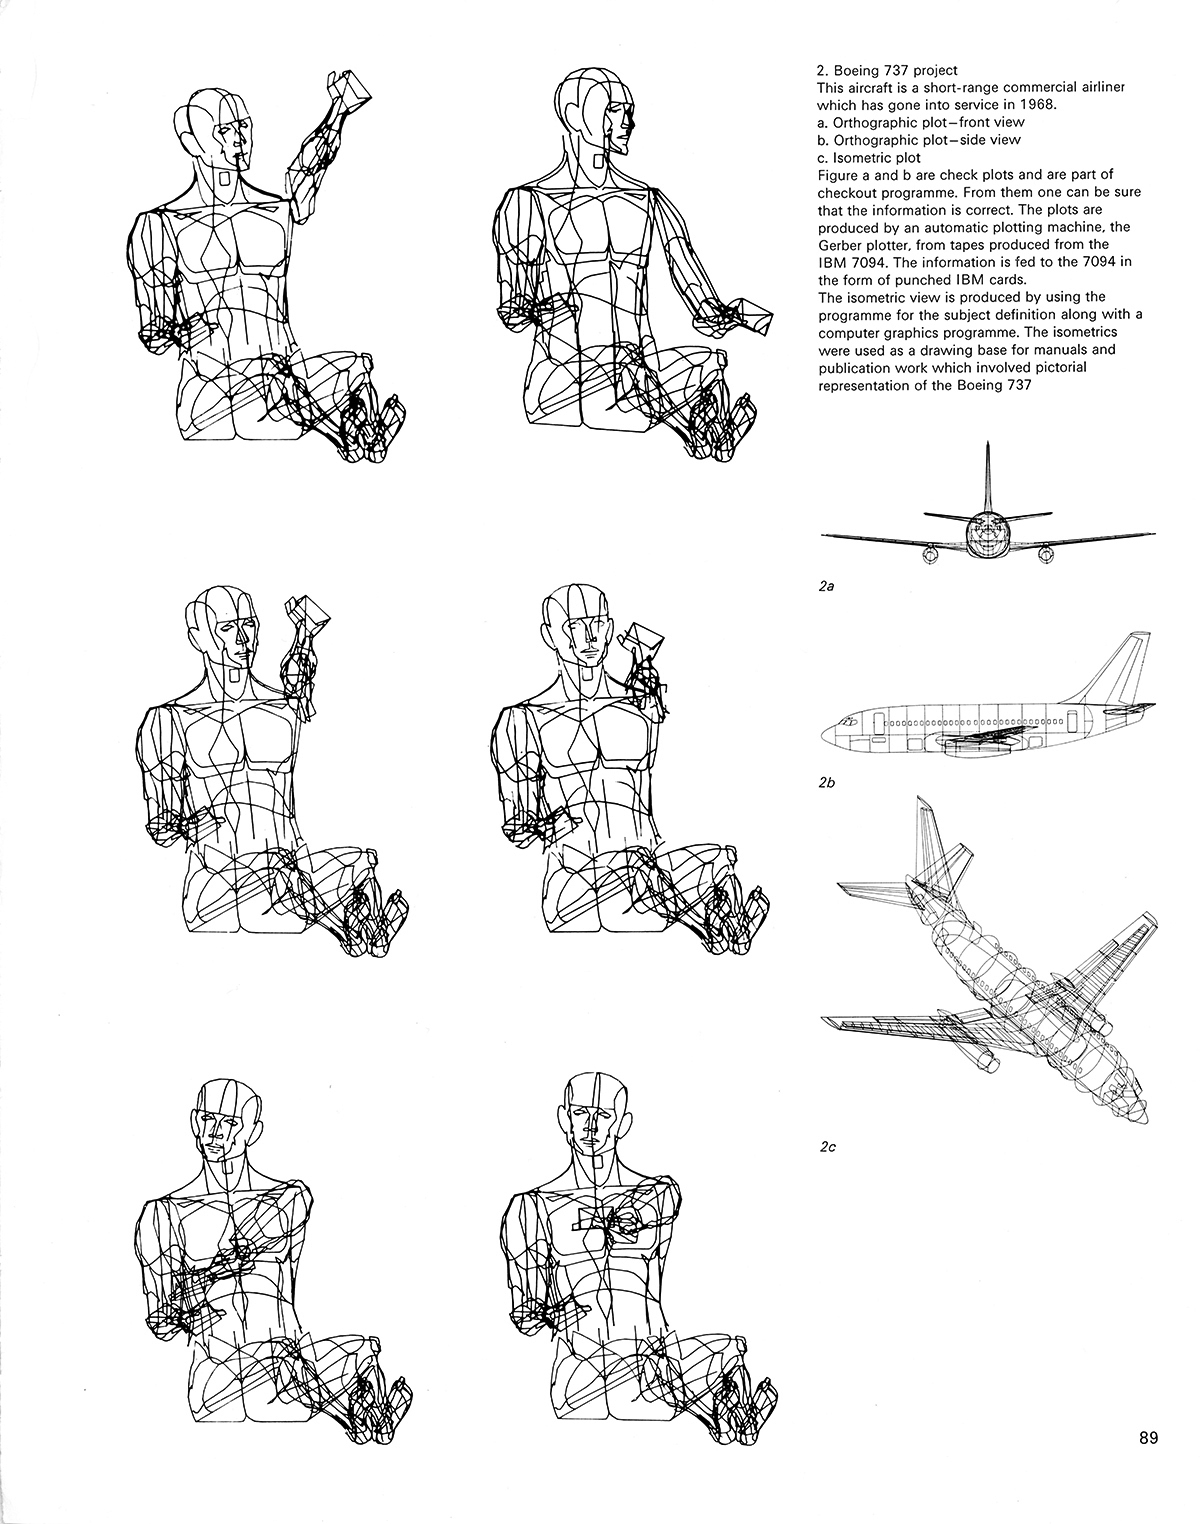 Boeing computer graphics. Cybernetic Serendipity: The Computer and the Arts, Studio International Special Issue, 1968, page 89.